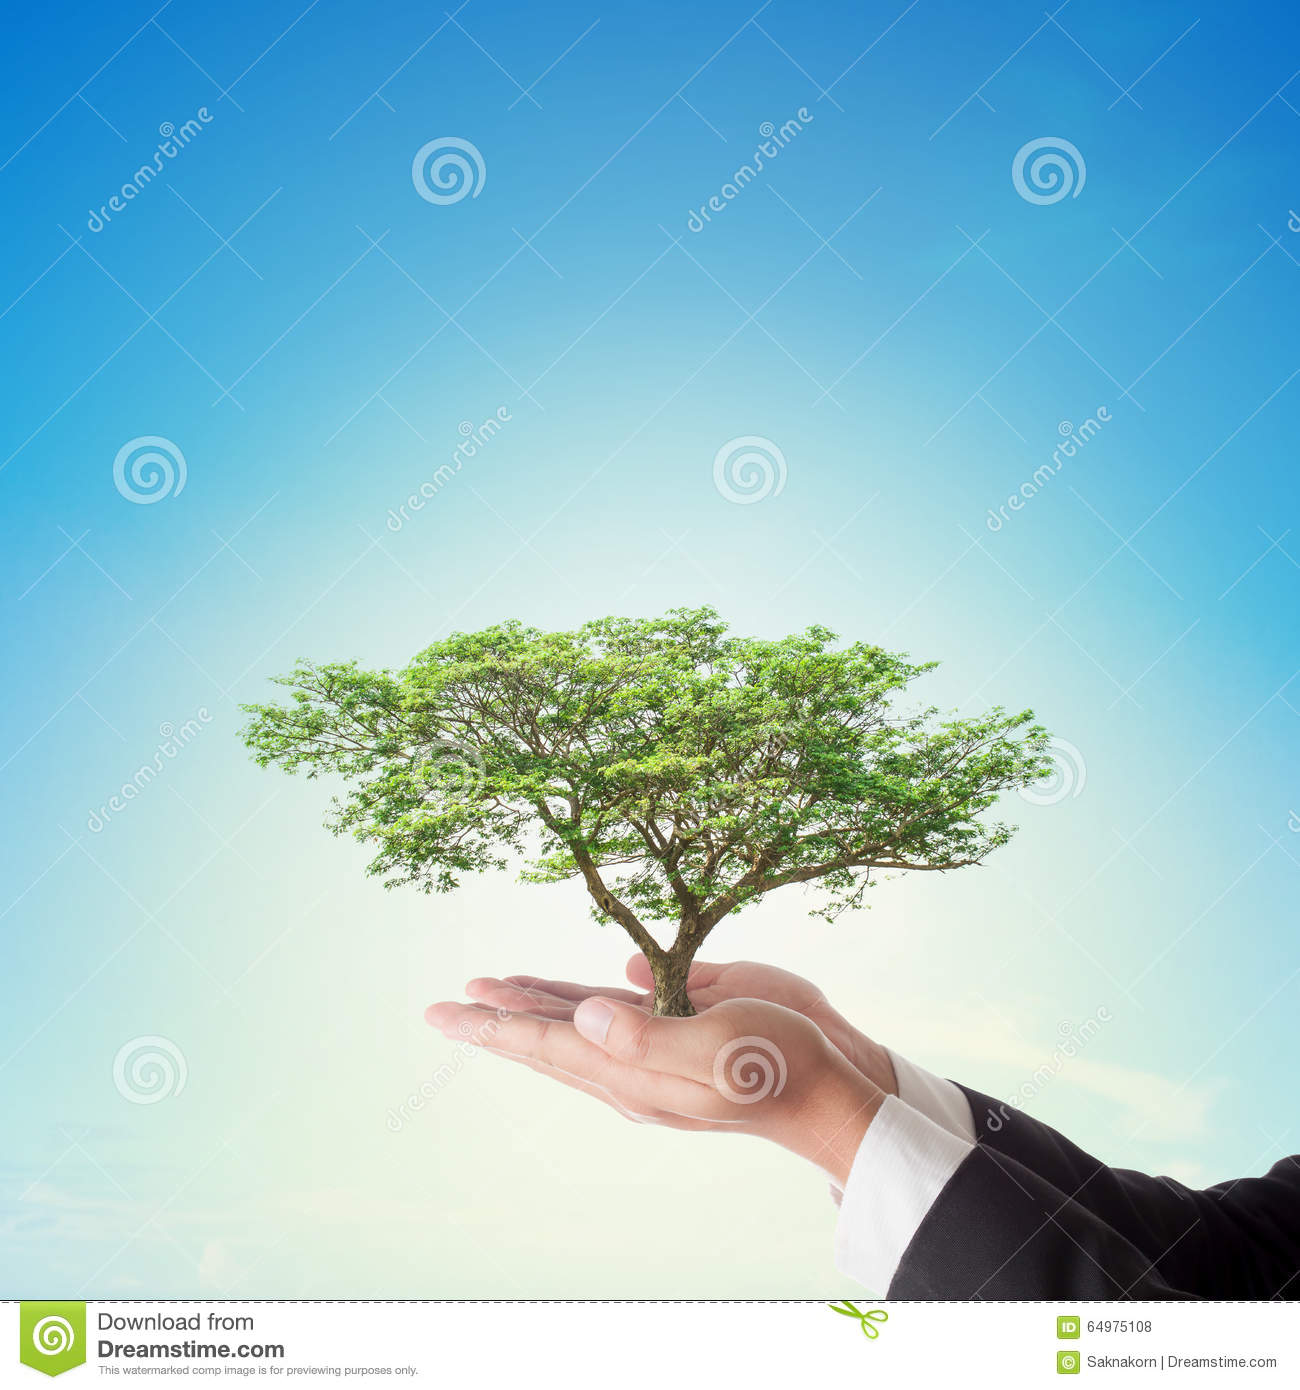 corporate social responsibility banyan tree holdings Corporate social responsibility this essay will be based on corporate social responsibility (csr) it should allow the reader to understand what csr is, the importance of csr and how it would influence customer activities.